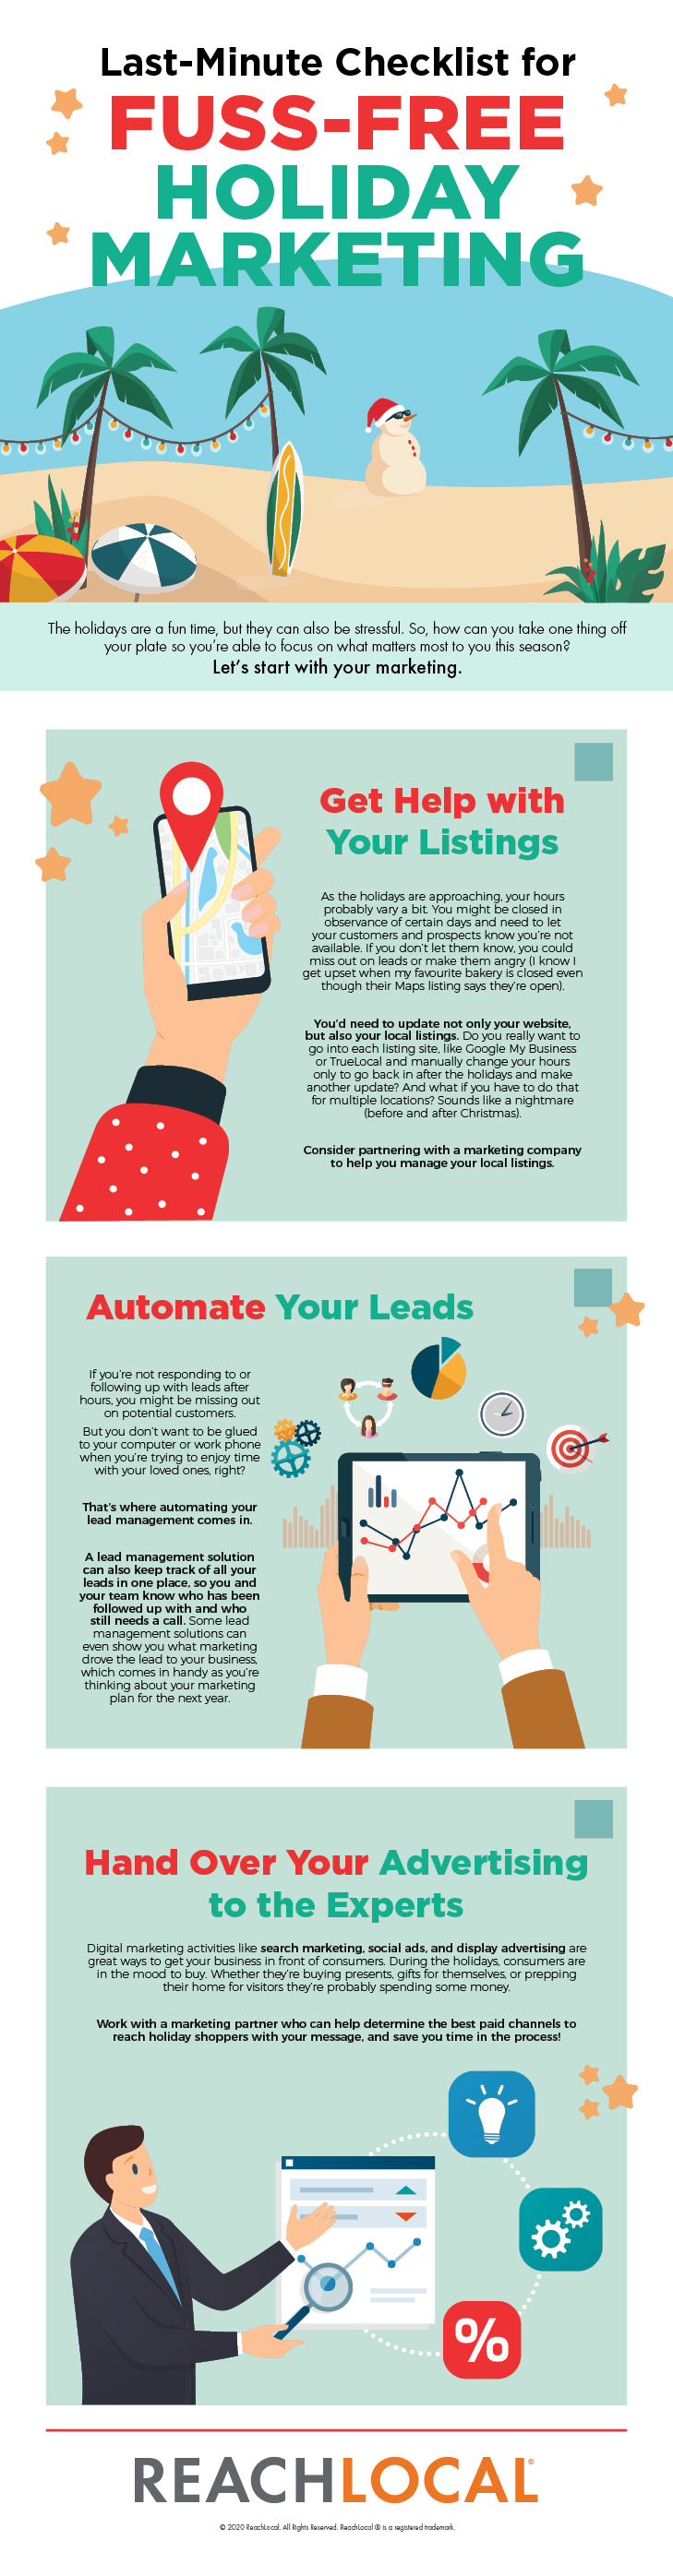 holiday marketing ideas infographic from ReachLocal